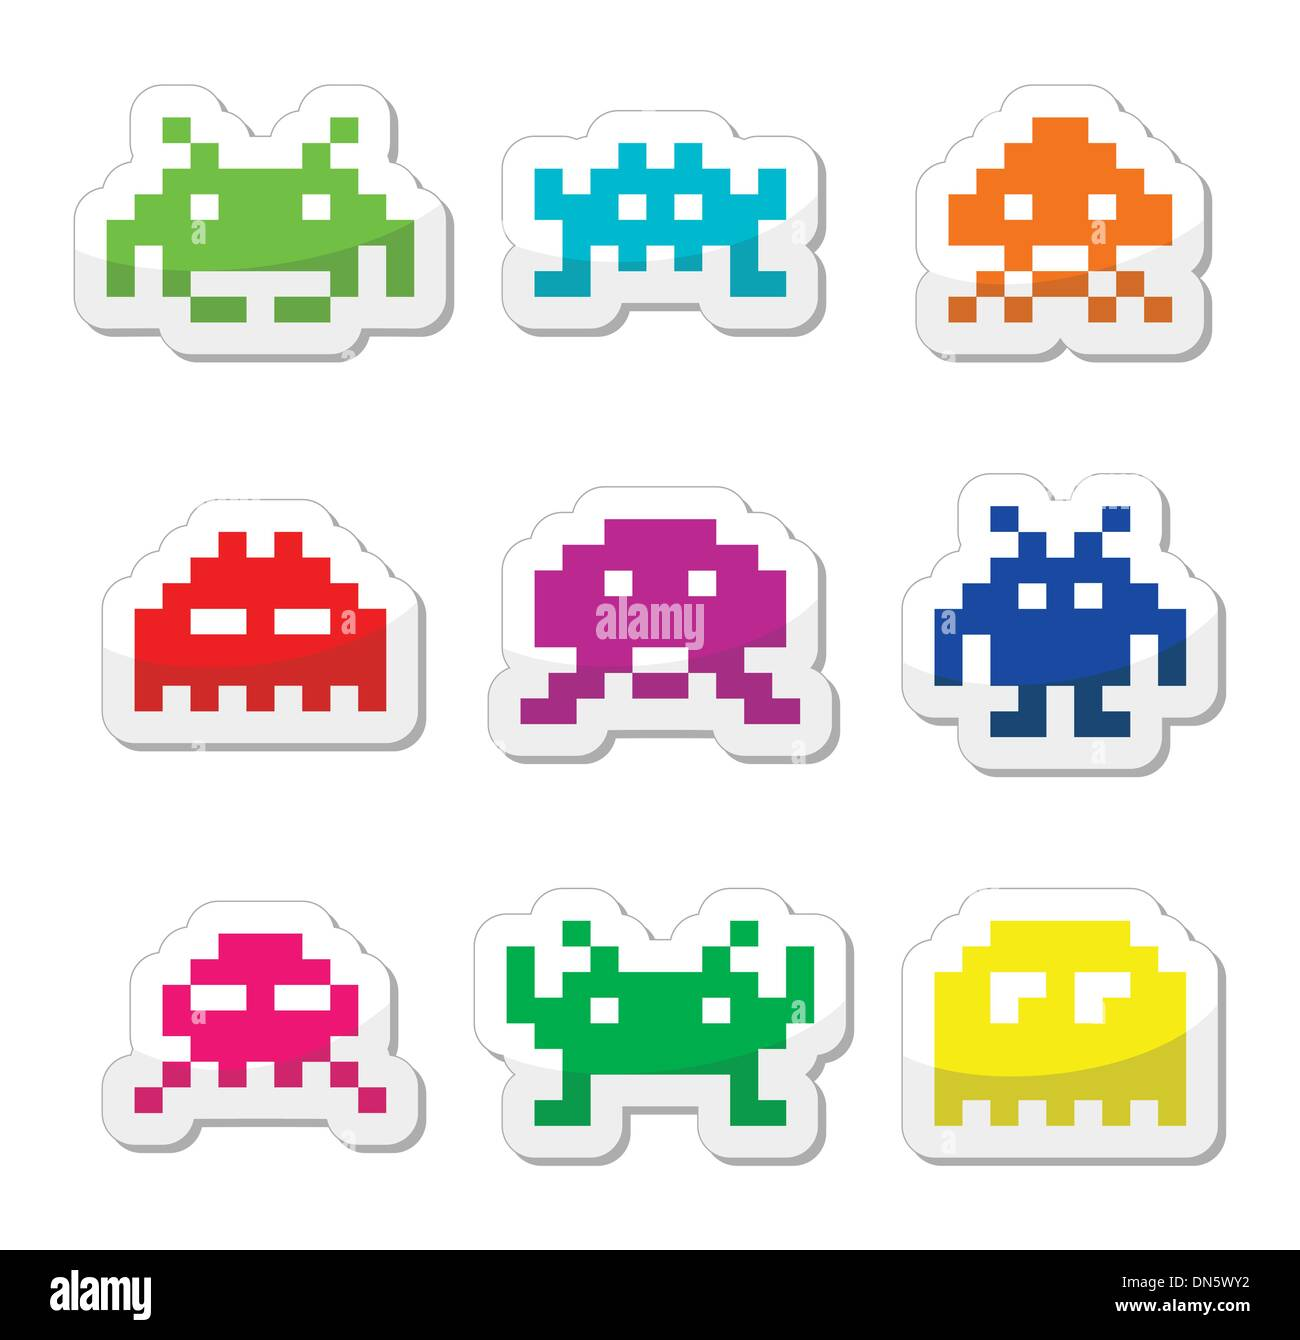 Space invaders, 8bit aliens icons set - Stock Image